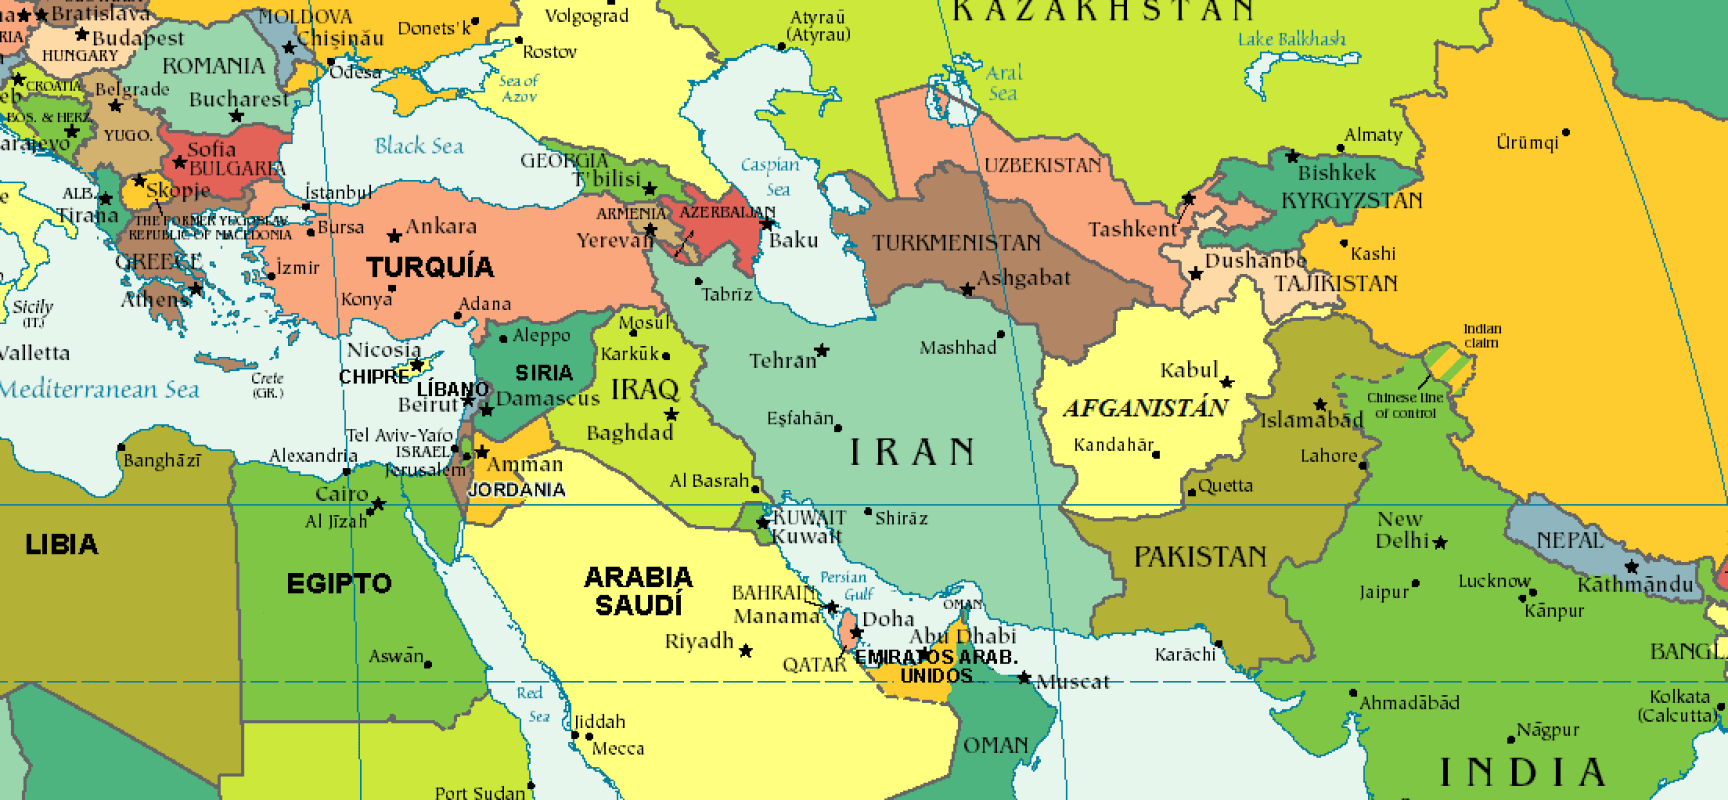 Intervention russe en Irak imminente?